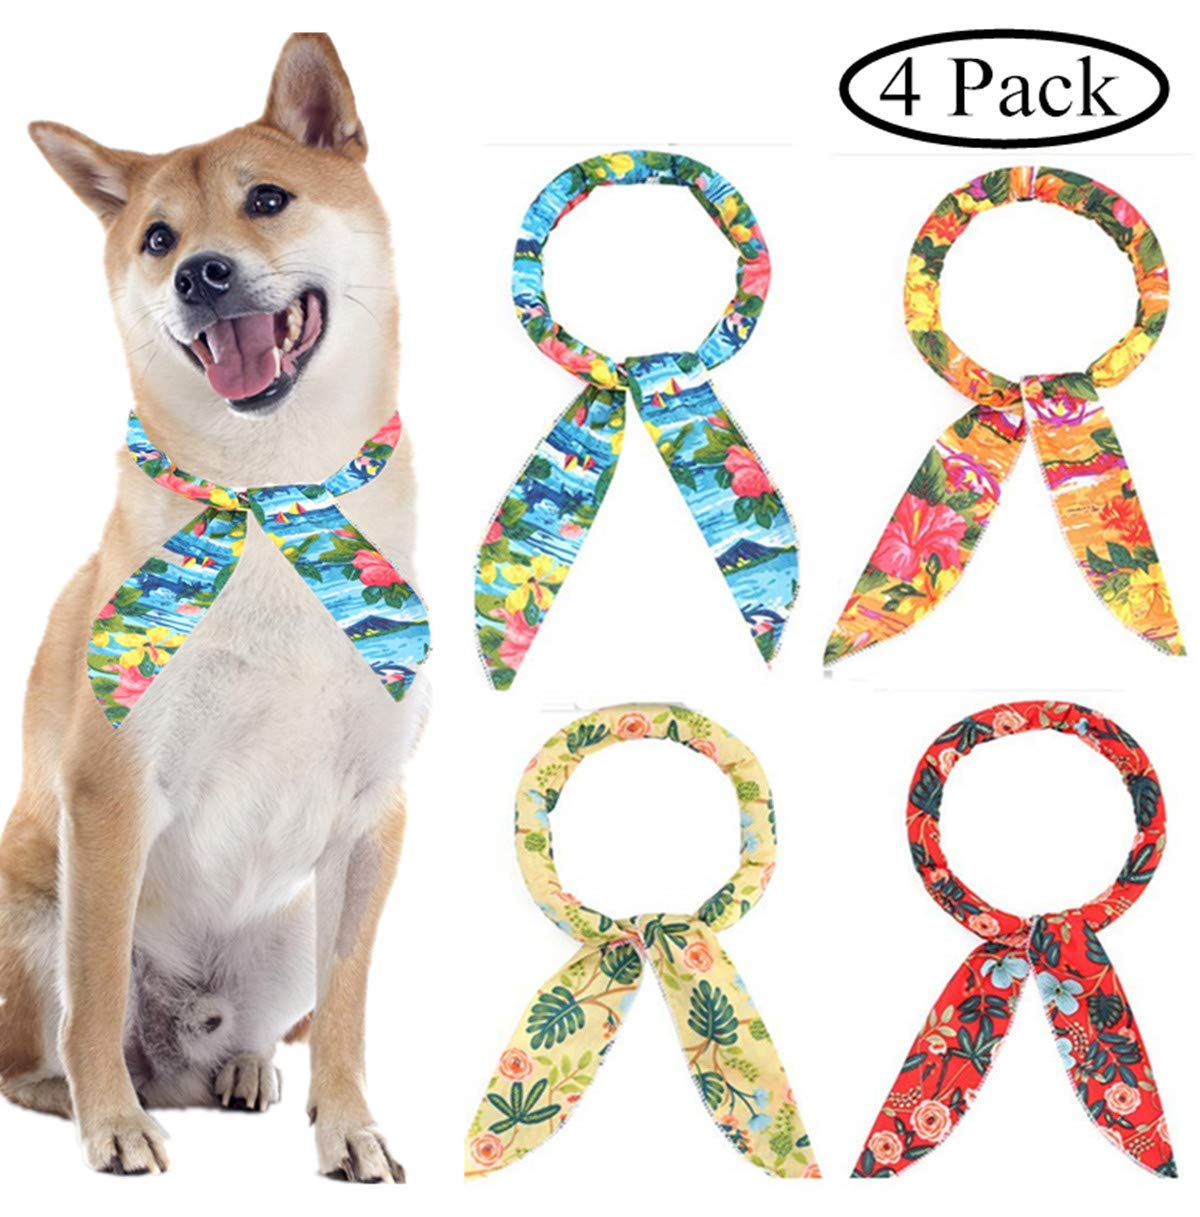 FT.Sky Dog Cooling Bandana Summer - 4 Pack Cooling Collar for Dogs Cooling Neck Wrap Headband